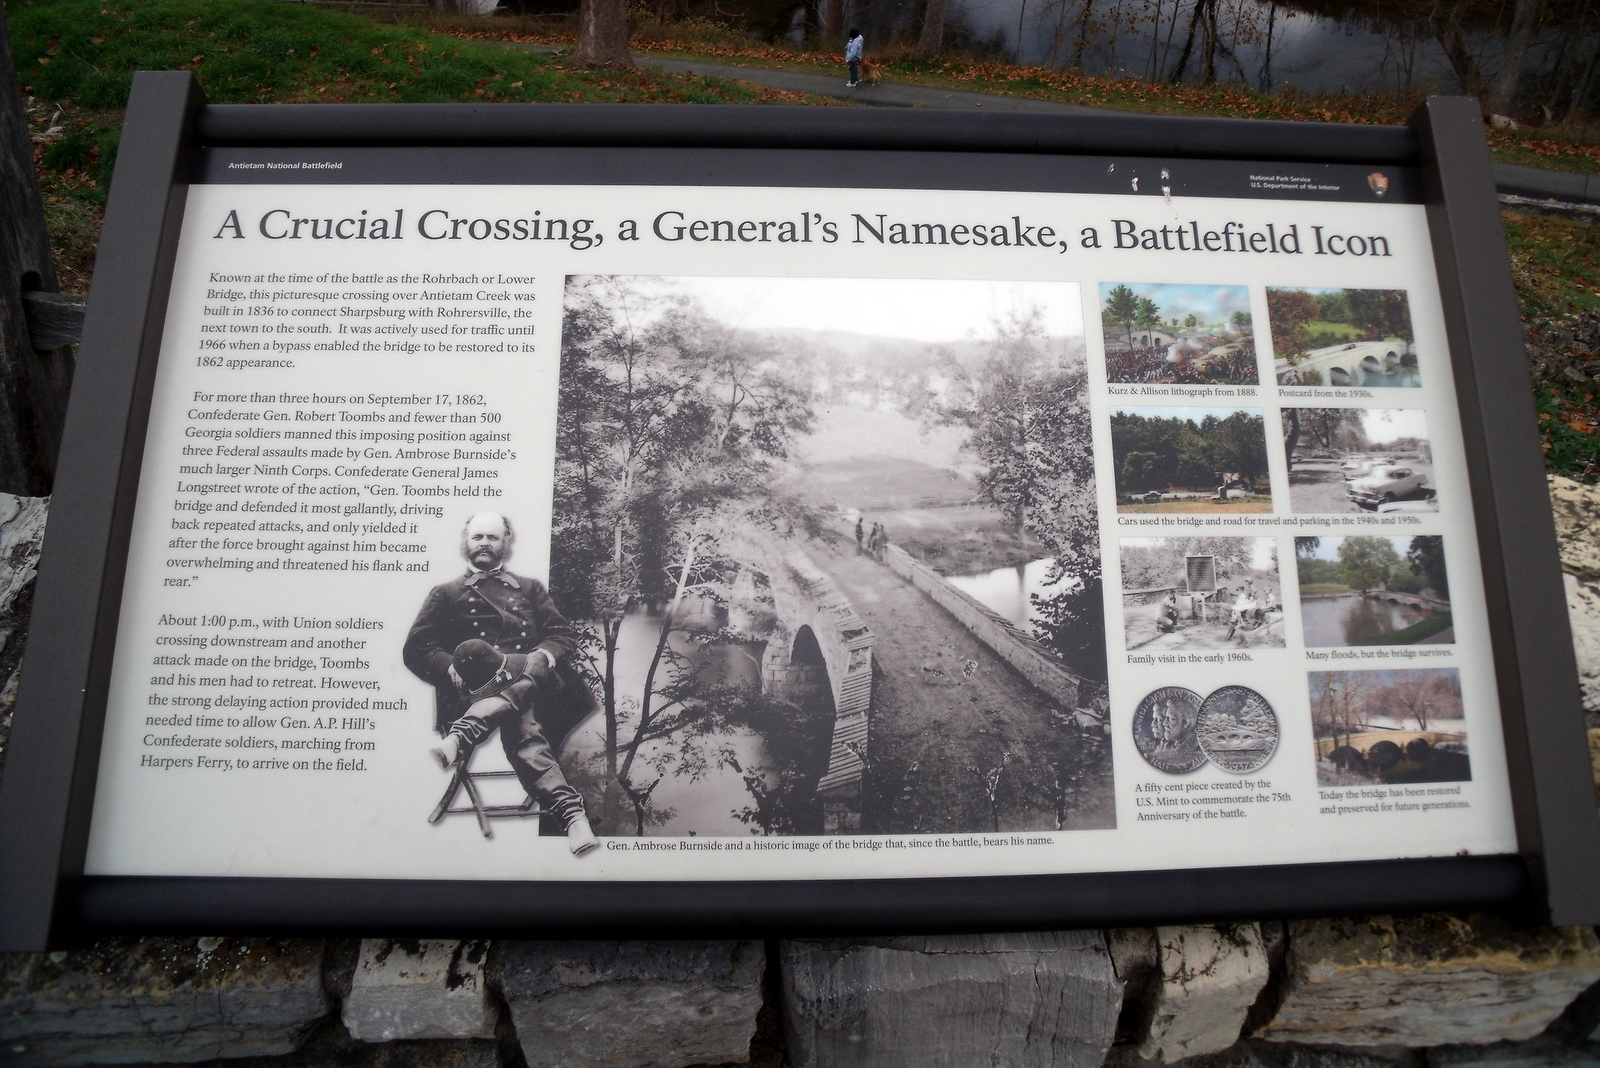 A Crucial Crossing, a General's Namesake, a Battlefield Icon Marker